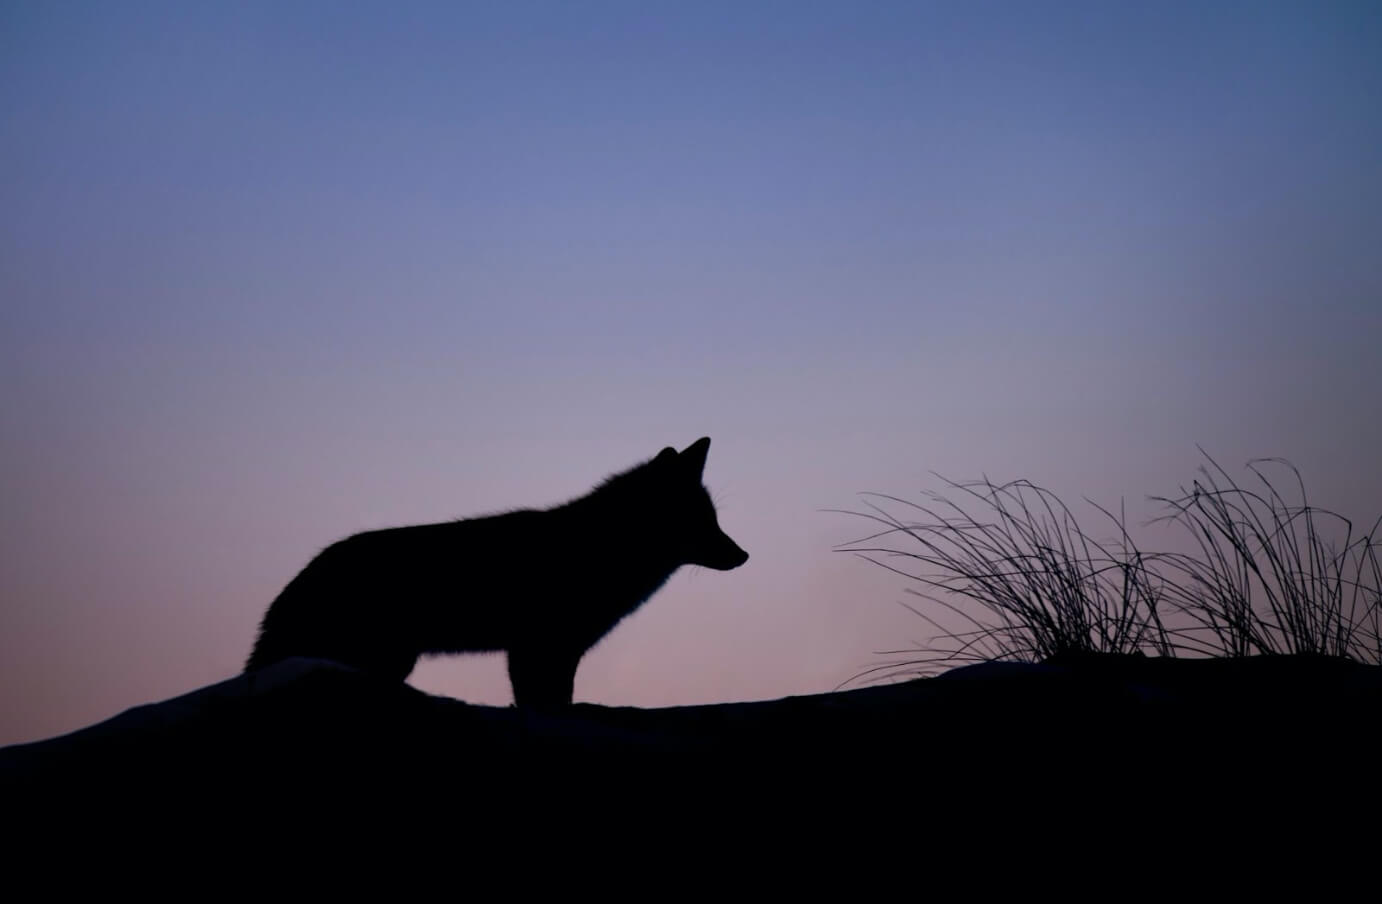 Photograph of a Falkland Island wolf's silhouette at sunset